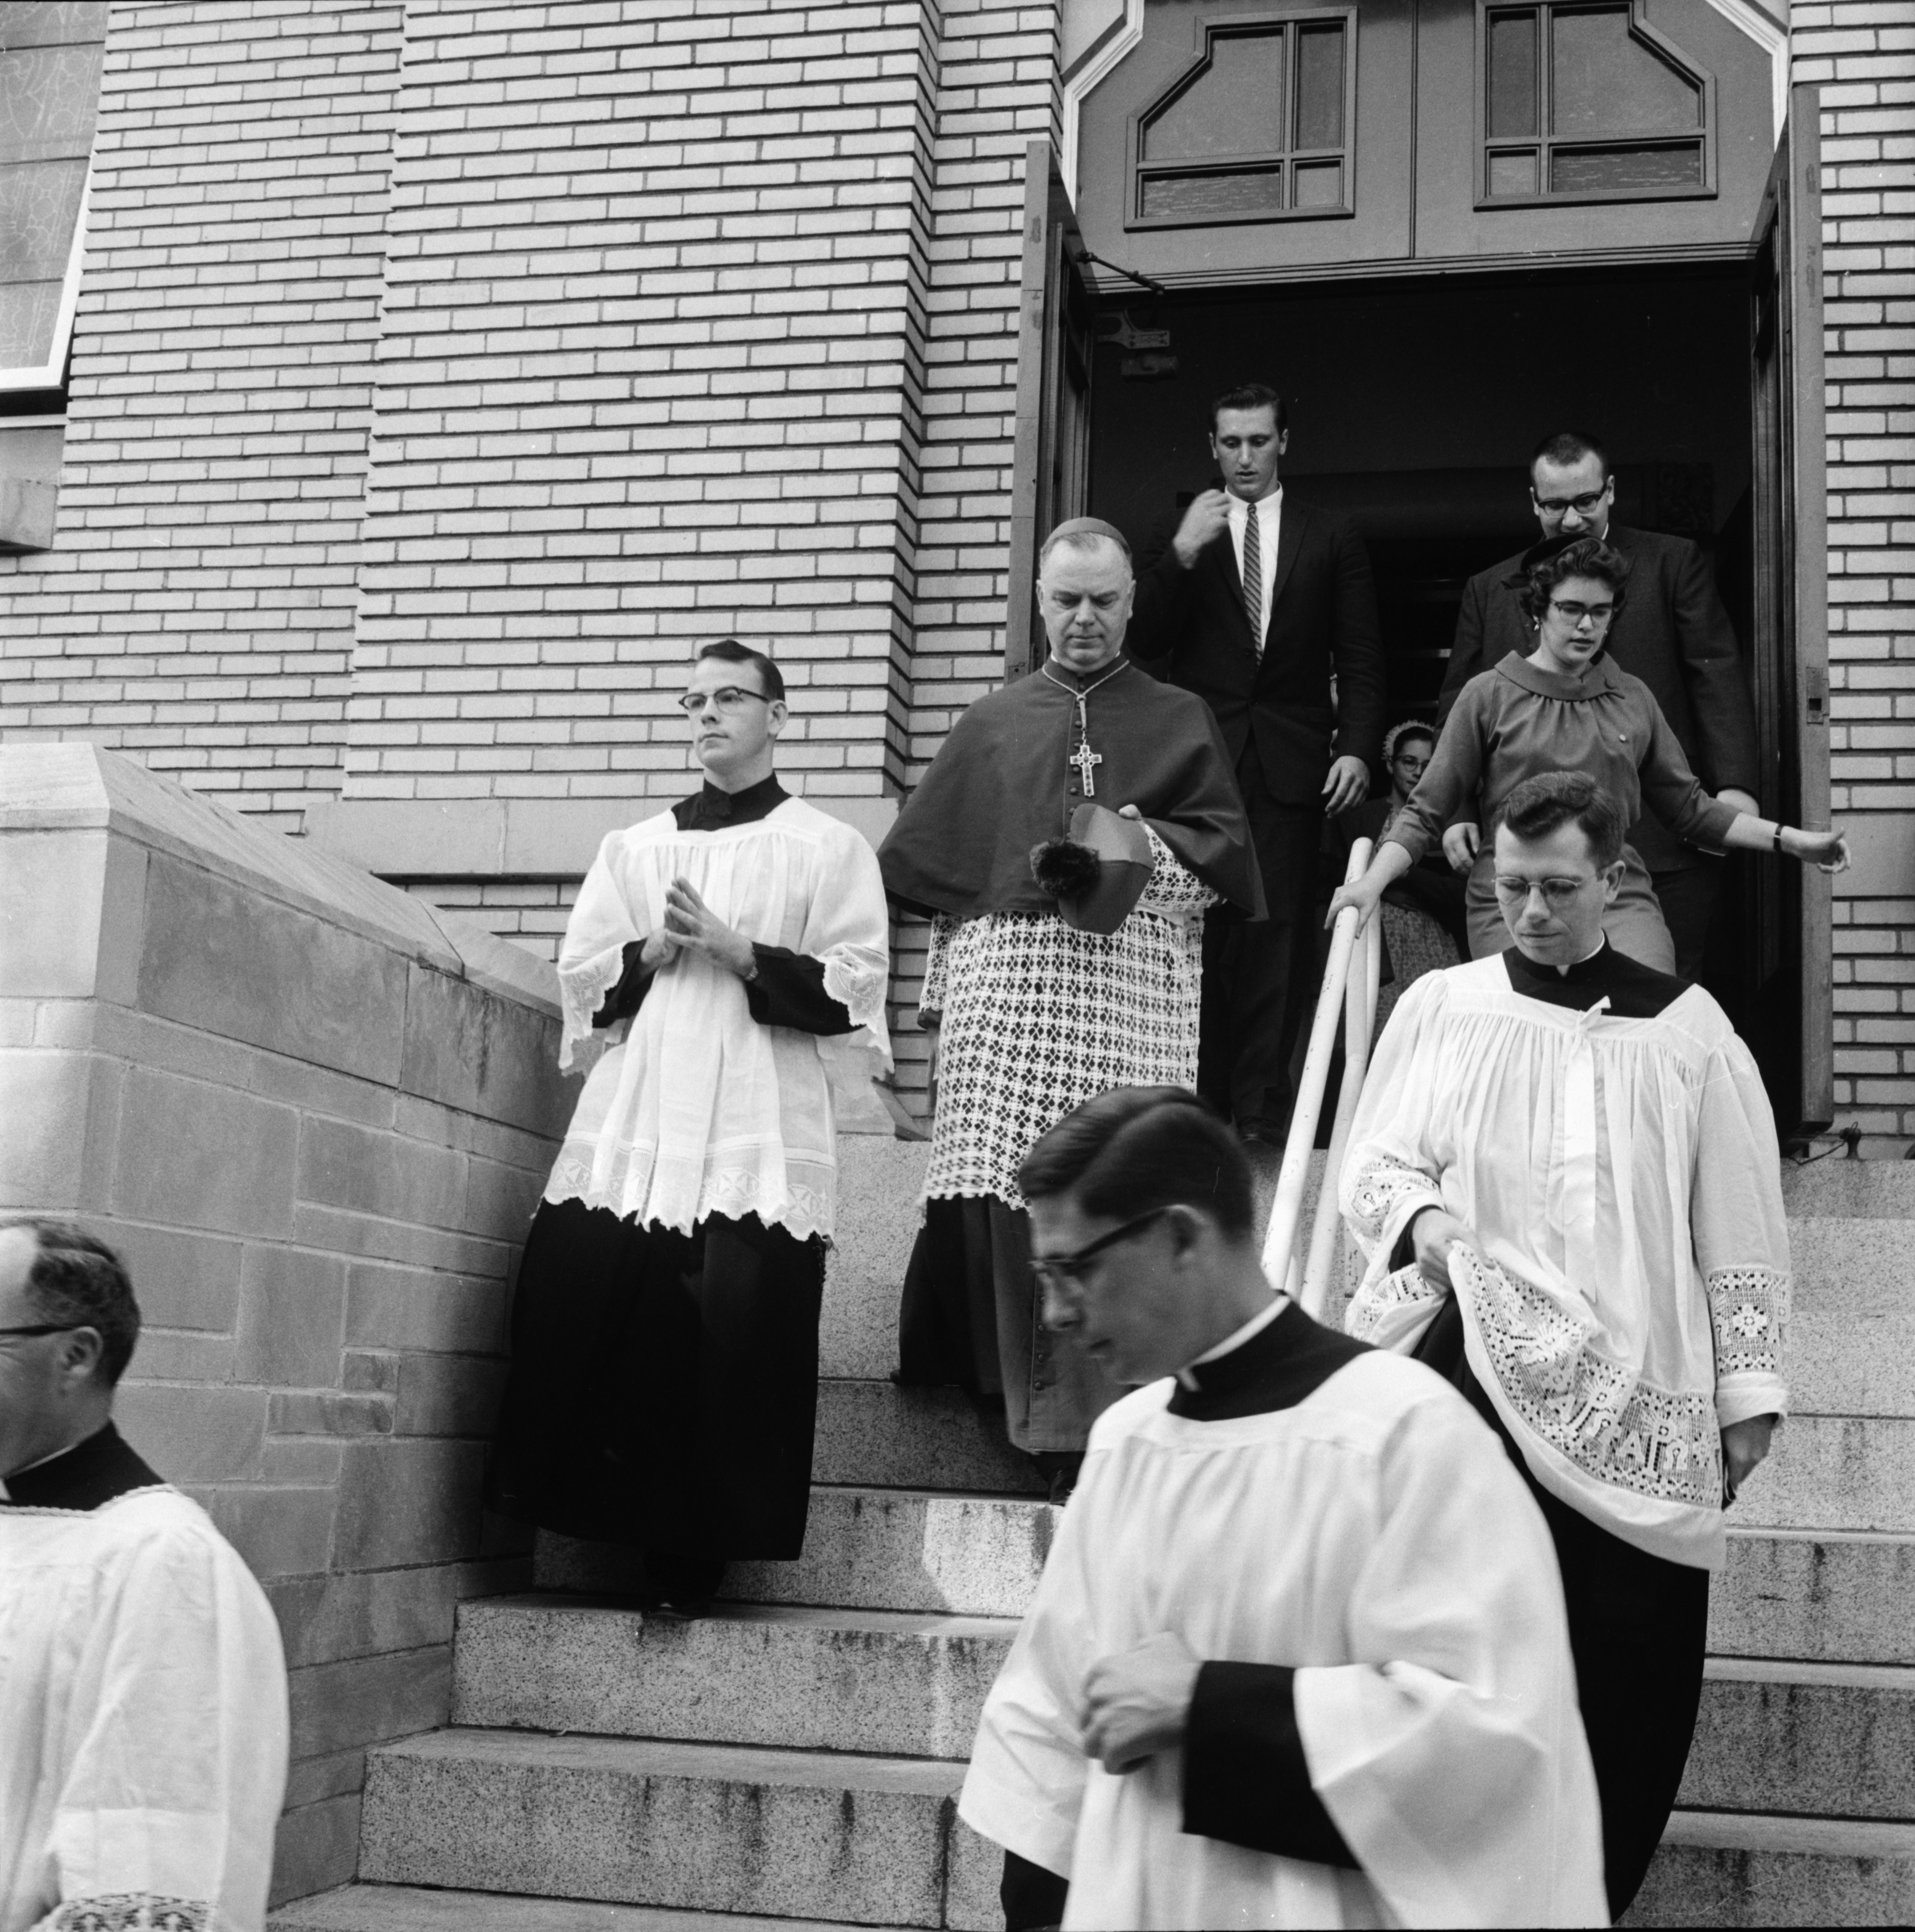 Archbishop John F. Dearden Visits St. Mary's and Installs Newman Club Officers, October 1961 image